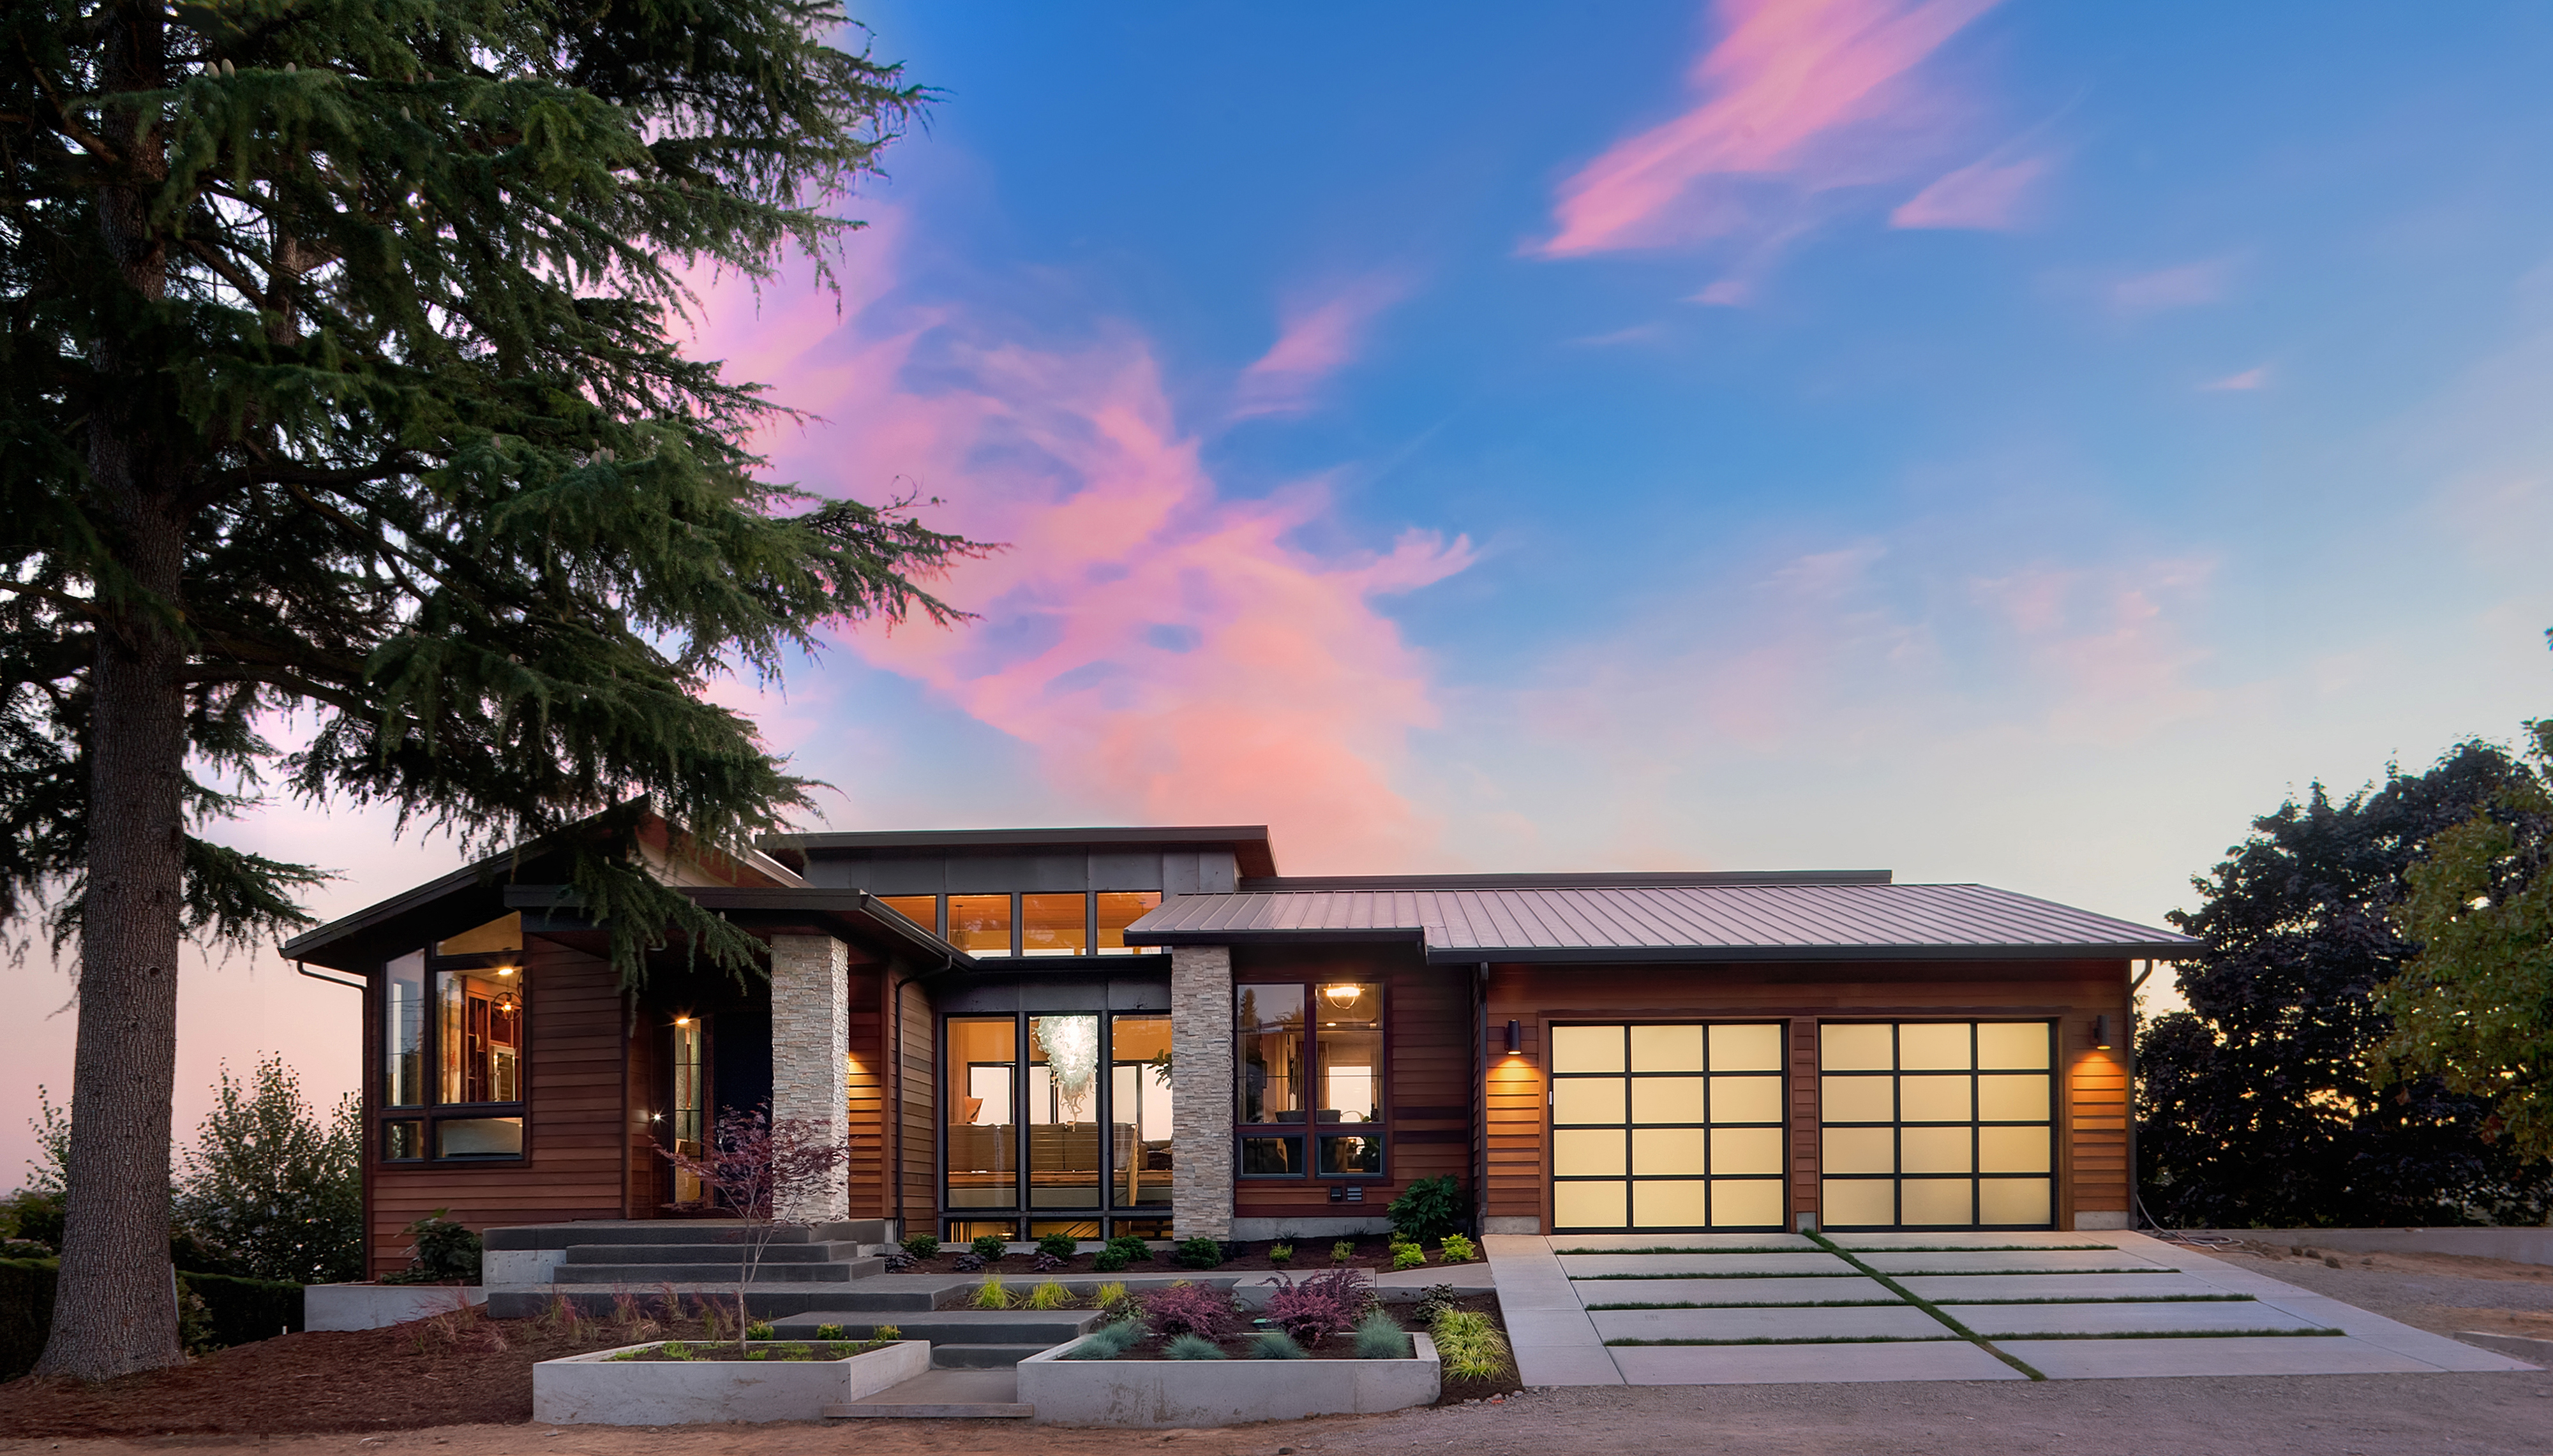 Beautiful Exterior of New Luxury Home at Twilight